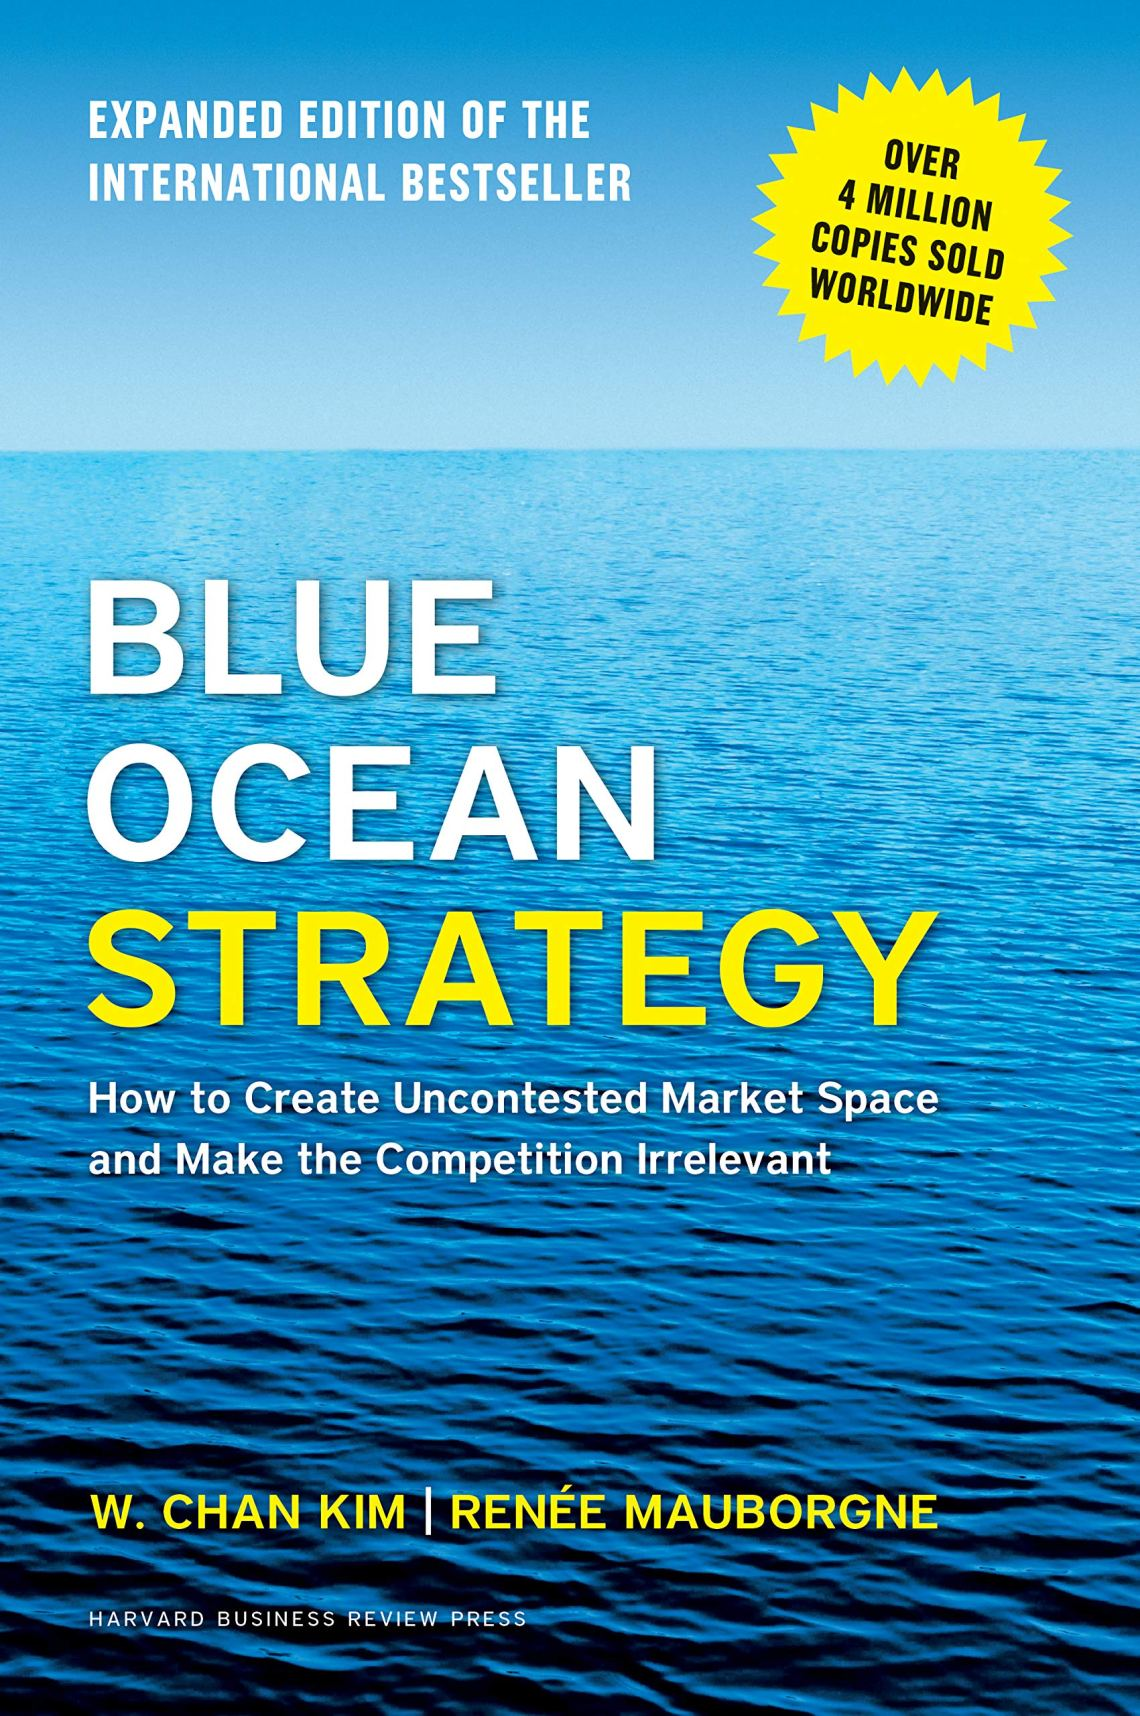 Blue Ocean Strategy one of business books